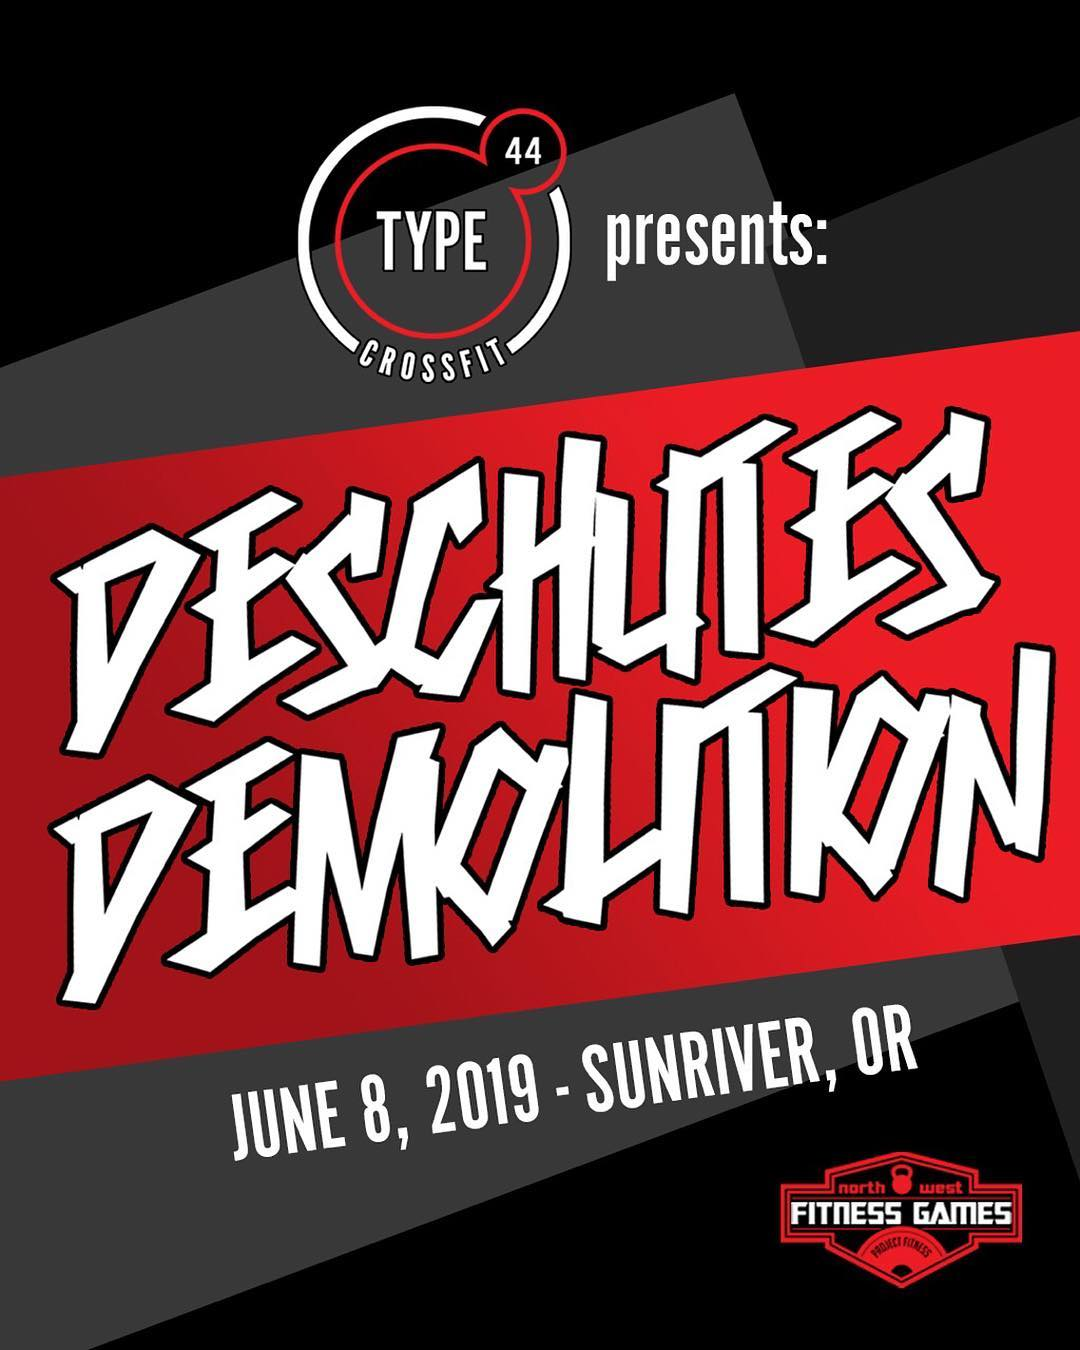 Grab a friend and get registered for the 5th annual Deschutes Demolition! Link in bio